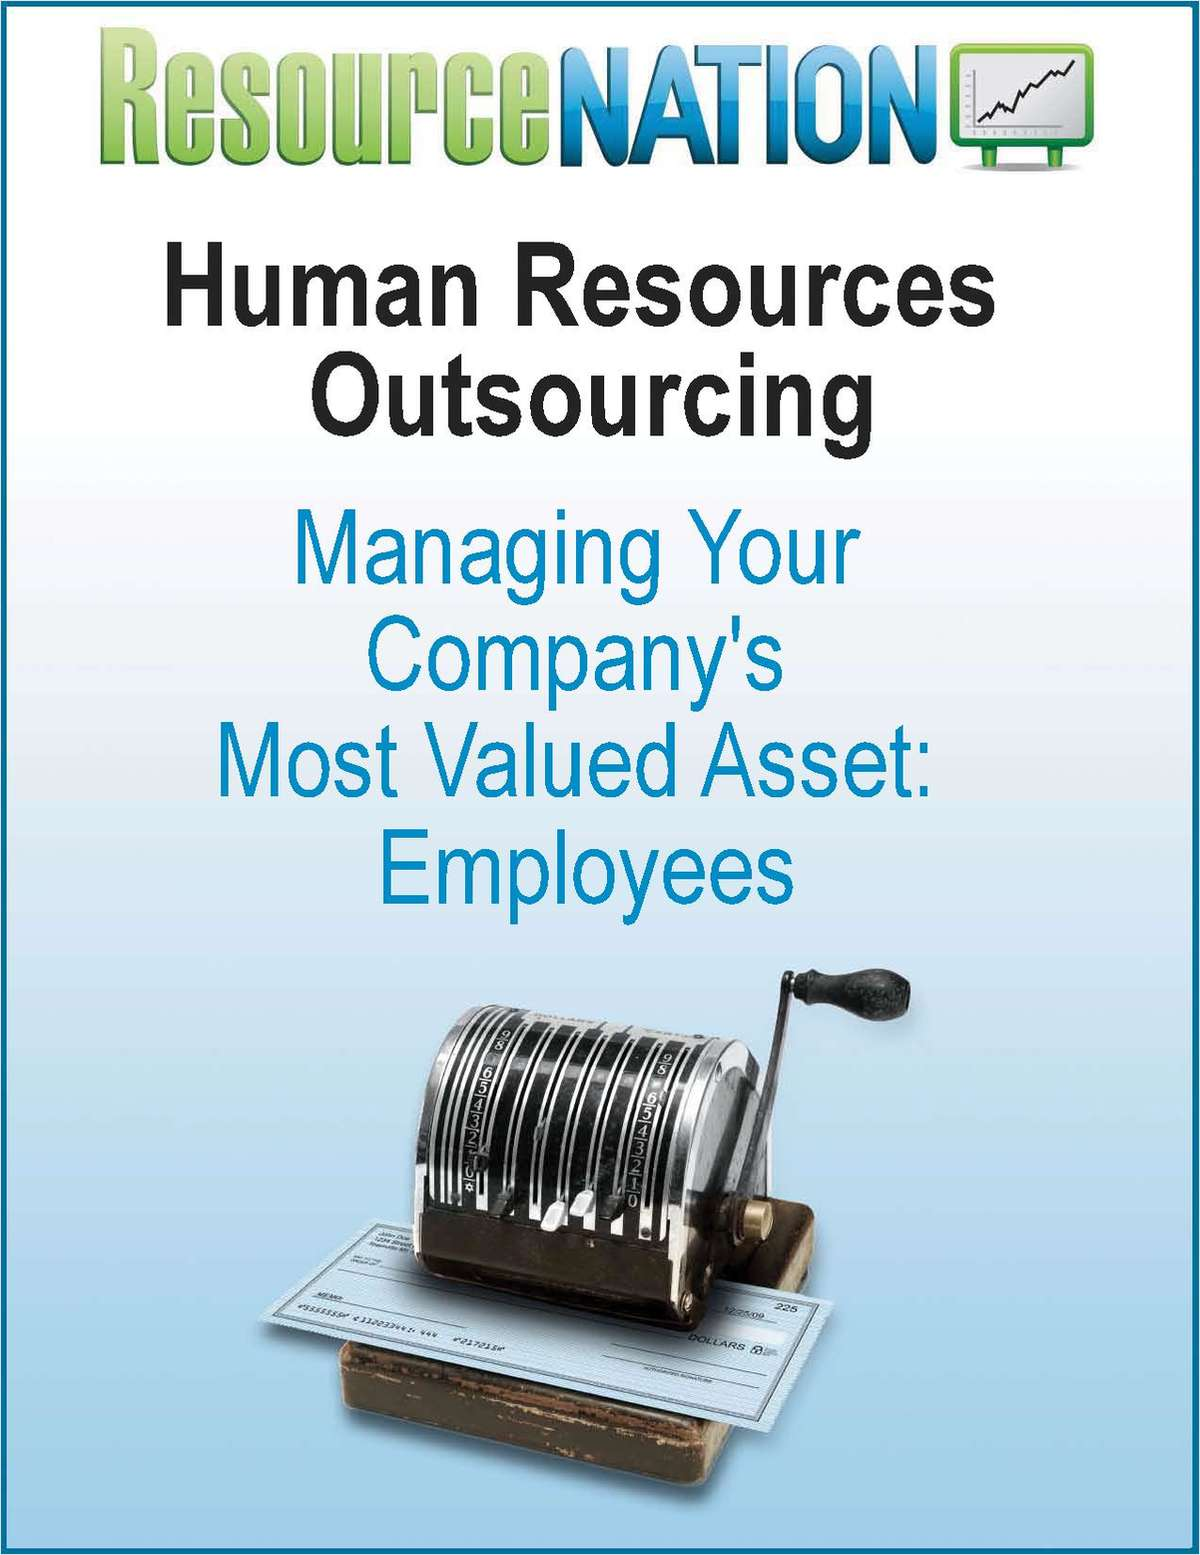 Benefits of Outsourcing Your Company's HR